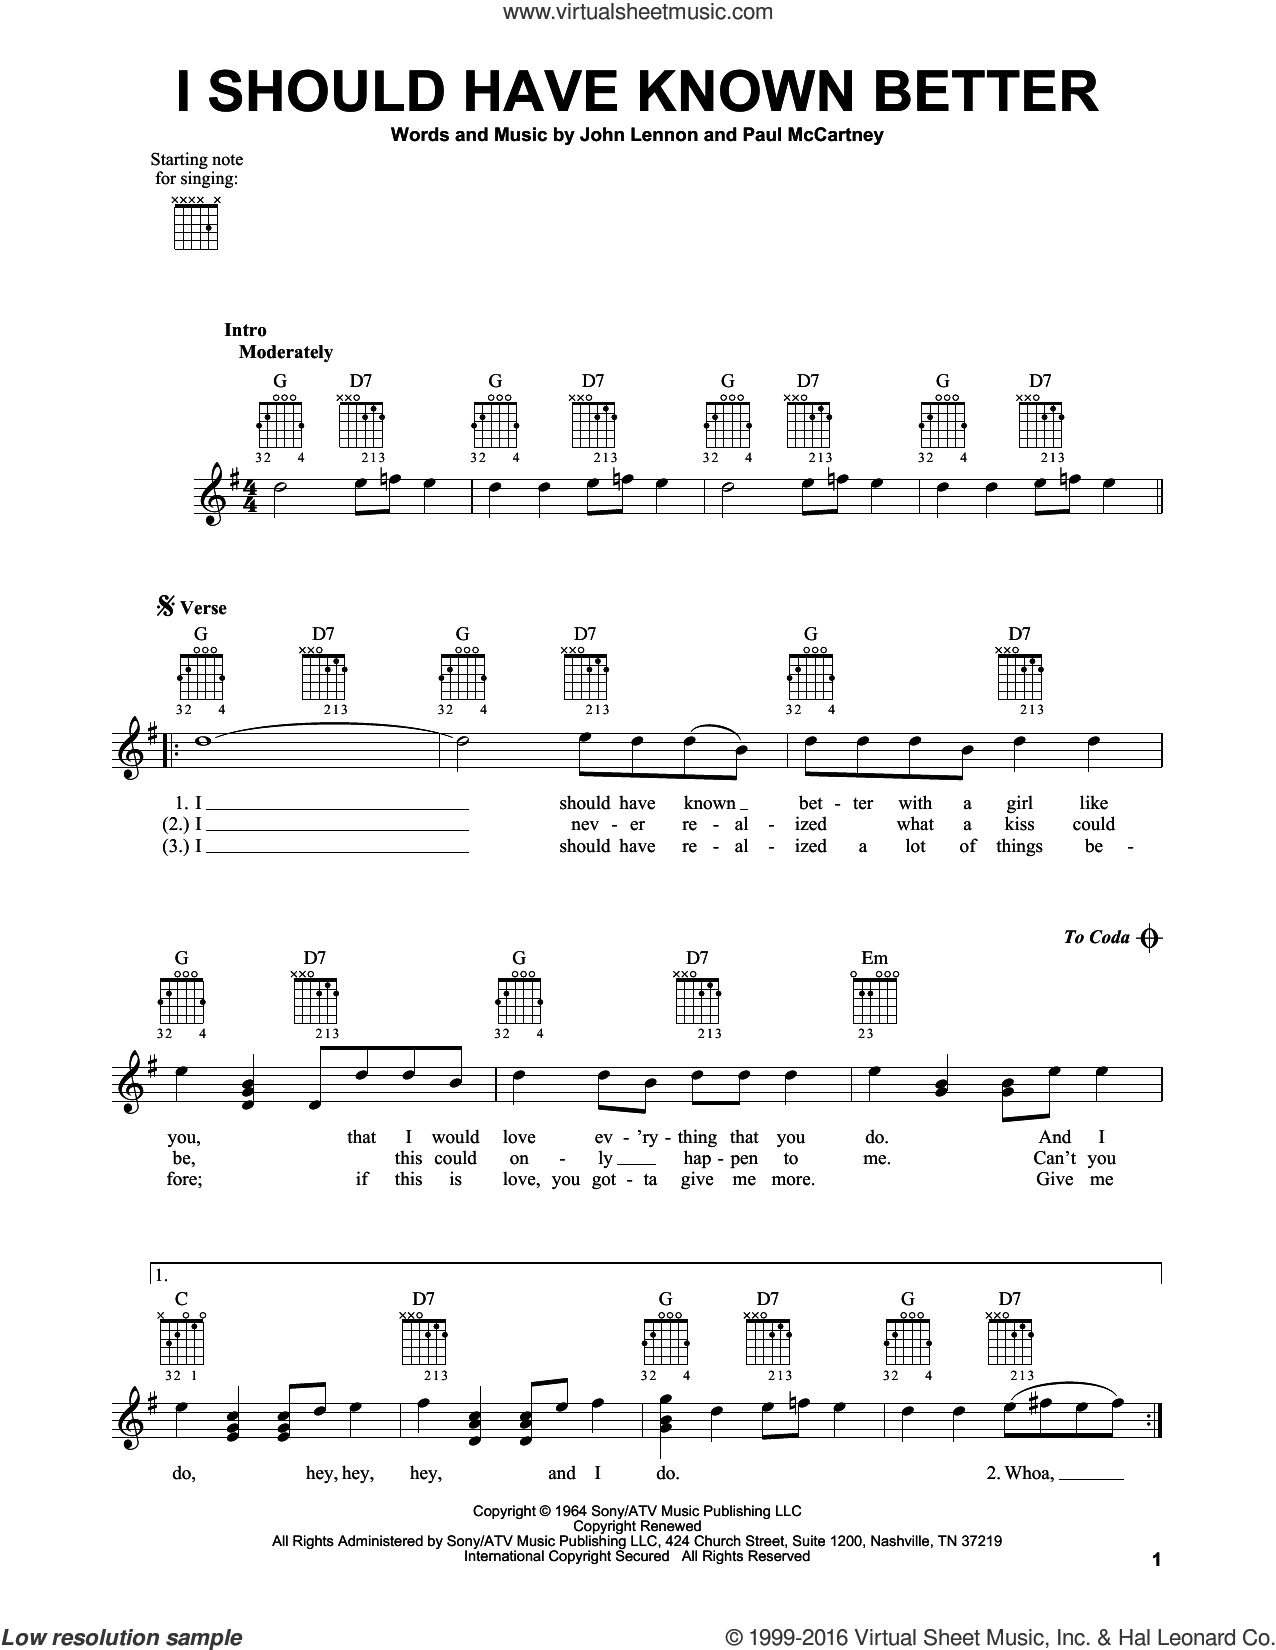 I Should Have Known Better sheet music for guitar solo (chords) by Paul McCartney, The Beatles and John Lennon. Score Image Preview.